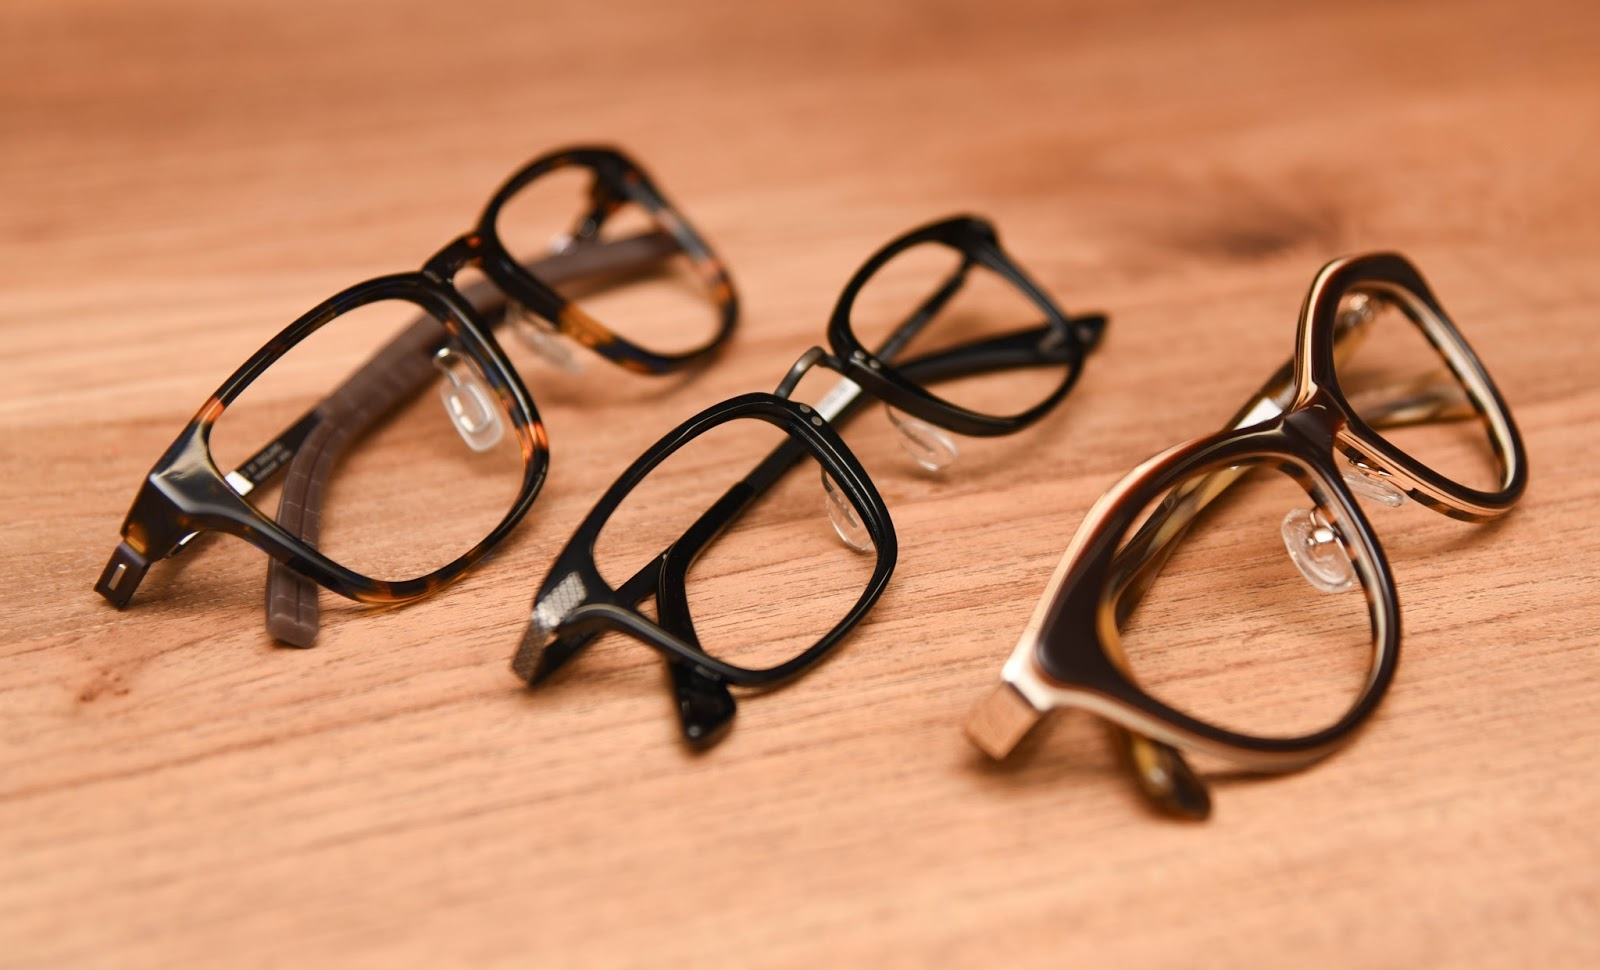 Remedy to a common eyewear fit issue: Nose pad arms for plastic ...